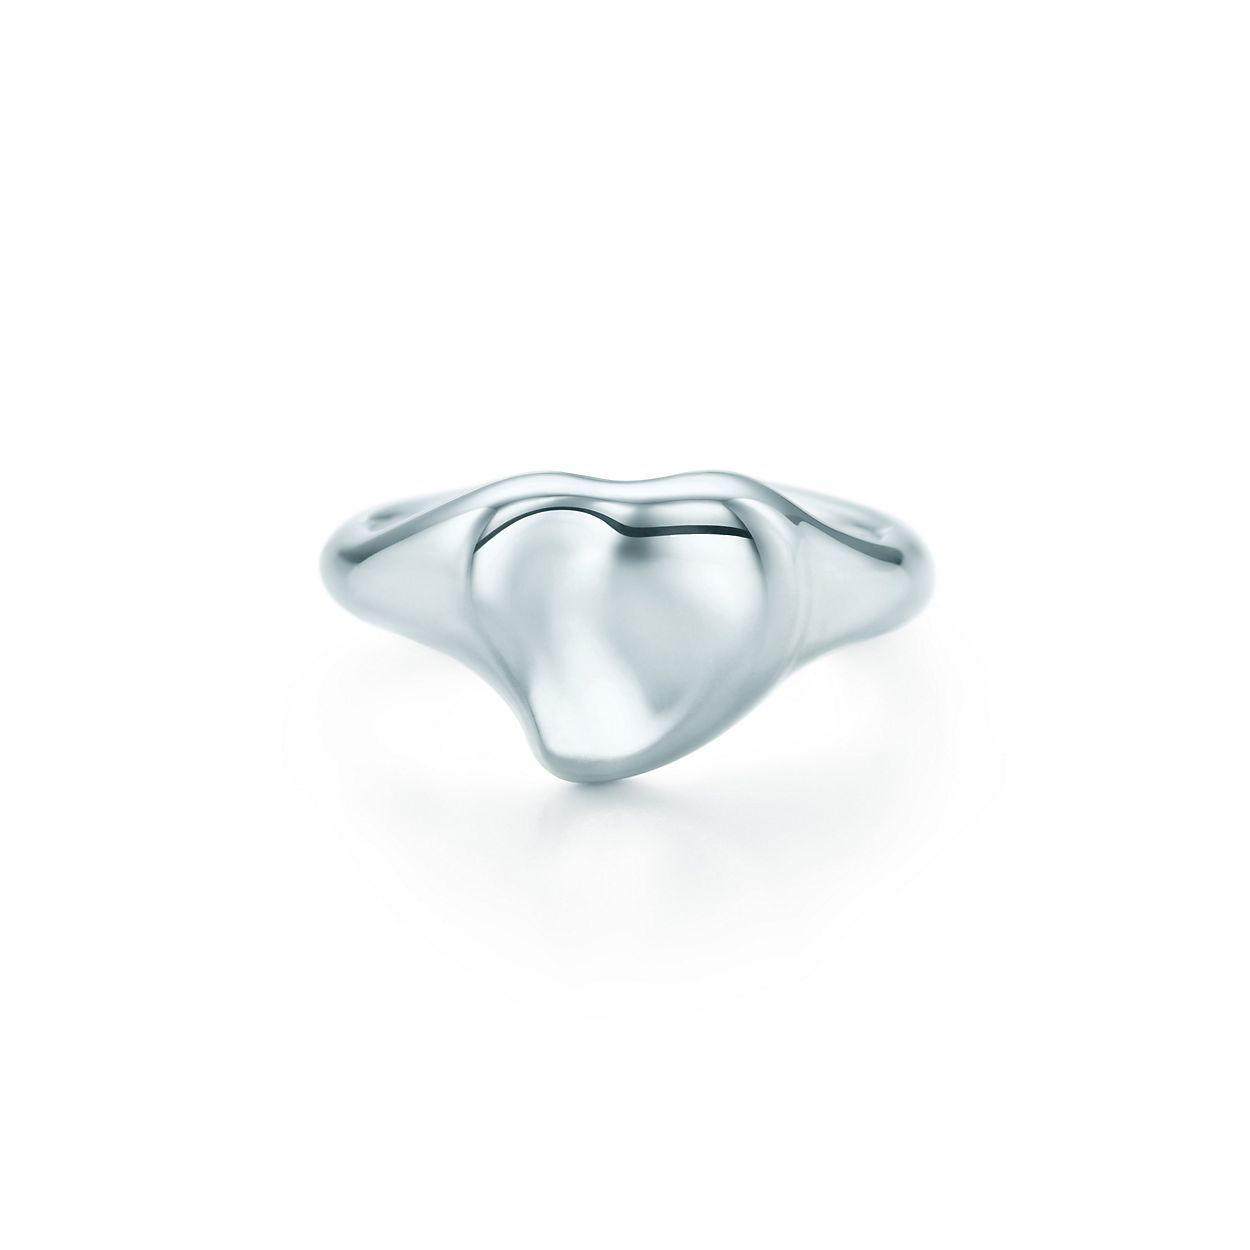 Elsa Peretti Full Heart ring in sterling silver, 11 mm wide - Size 6 1/2 Tiffany & Co.